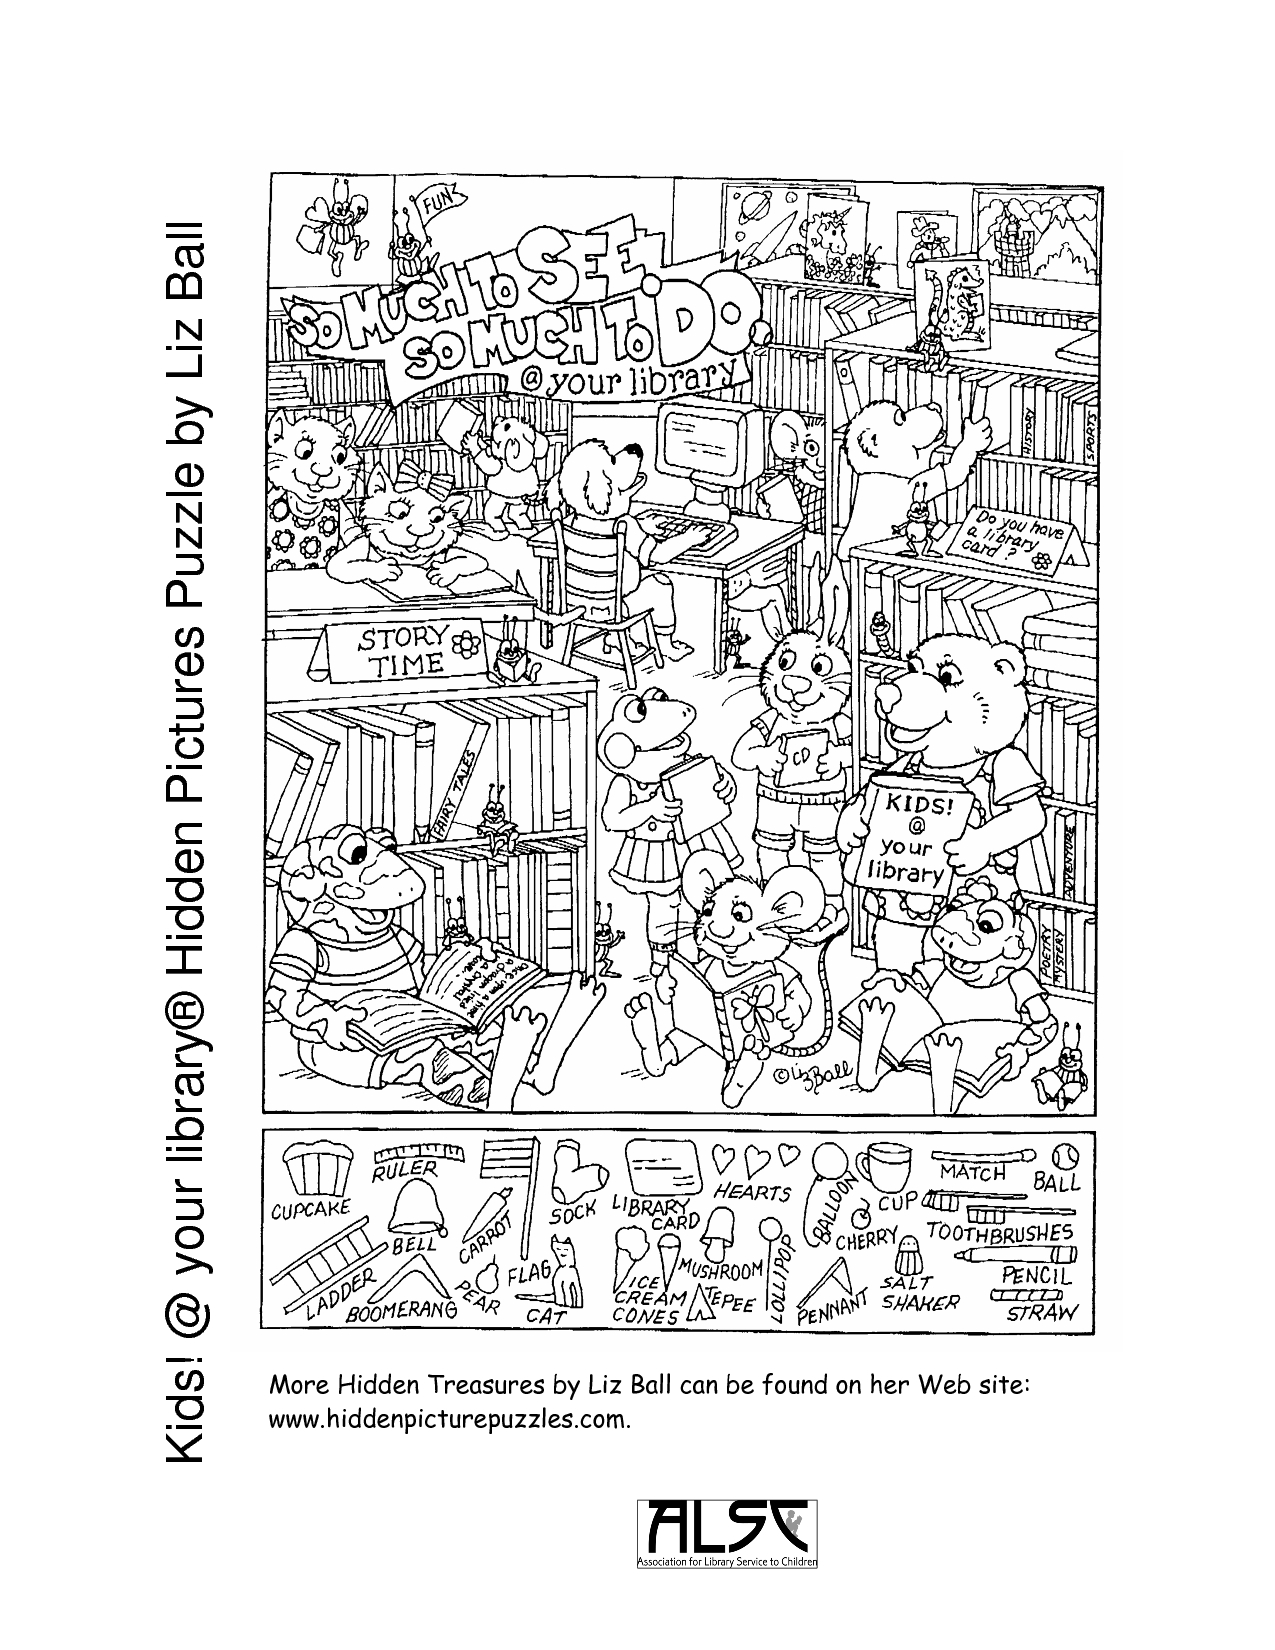 Printable Puzzles For Adults | Kids Your Library® Hidden Pictures - Printable Hidden Puzzle Games